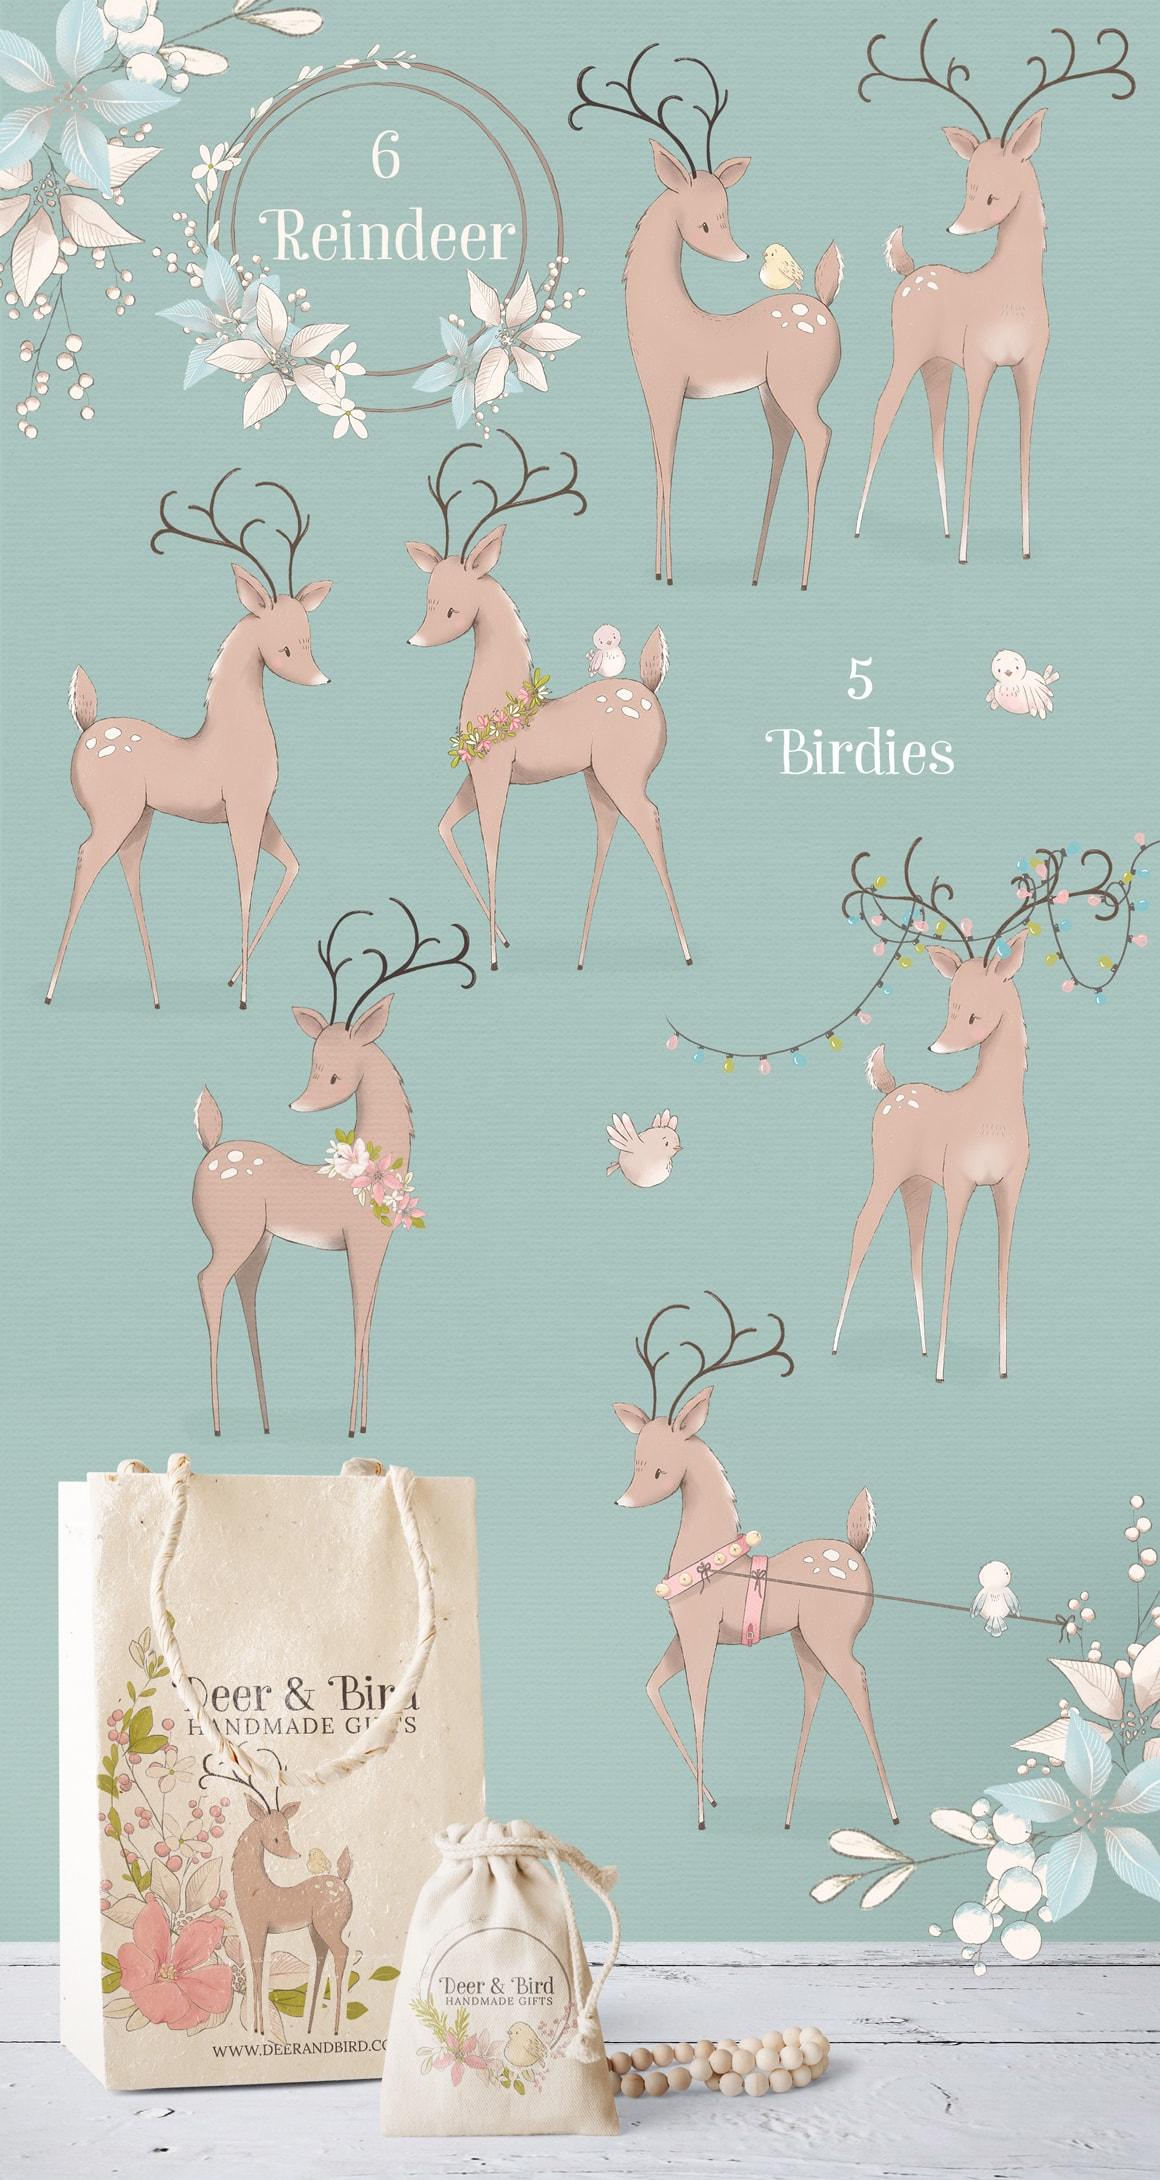 Reindeer and birdies clipart illustrations